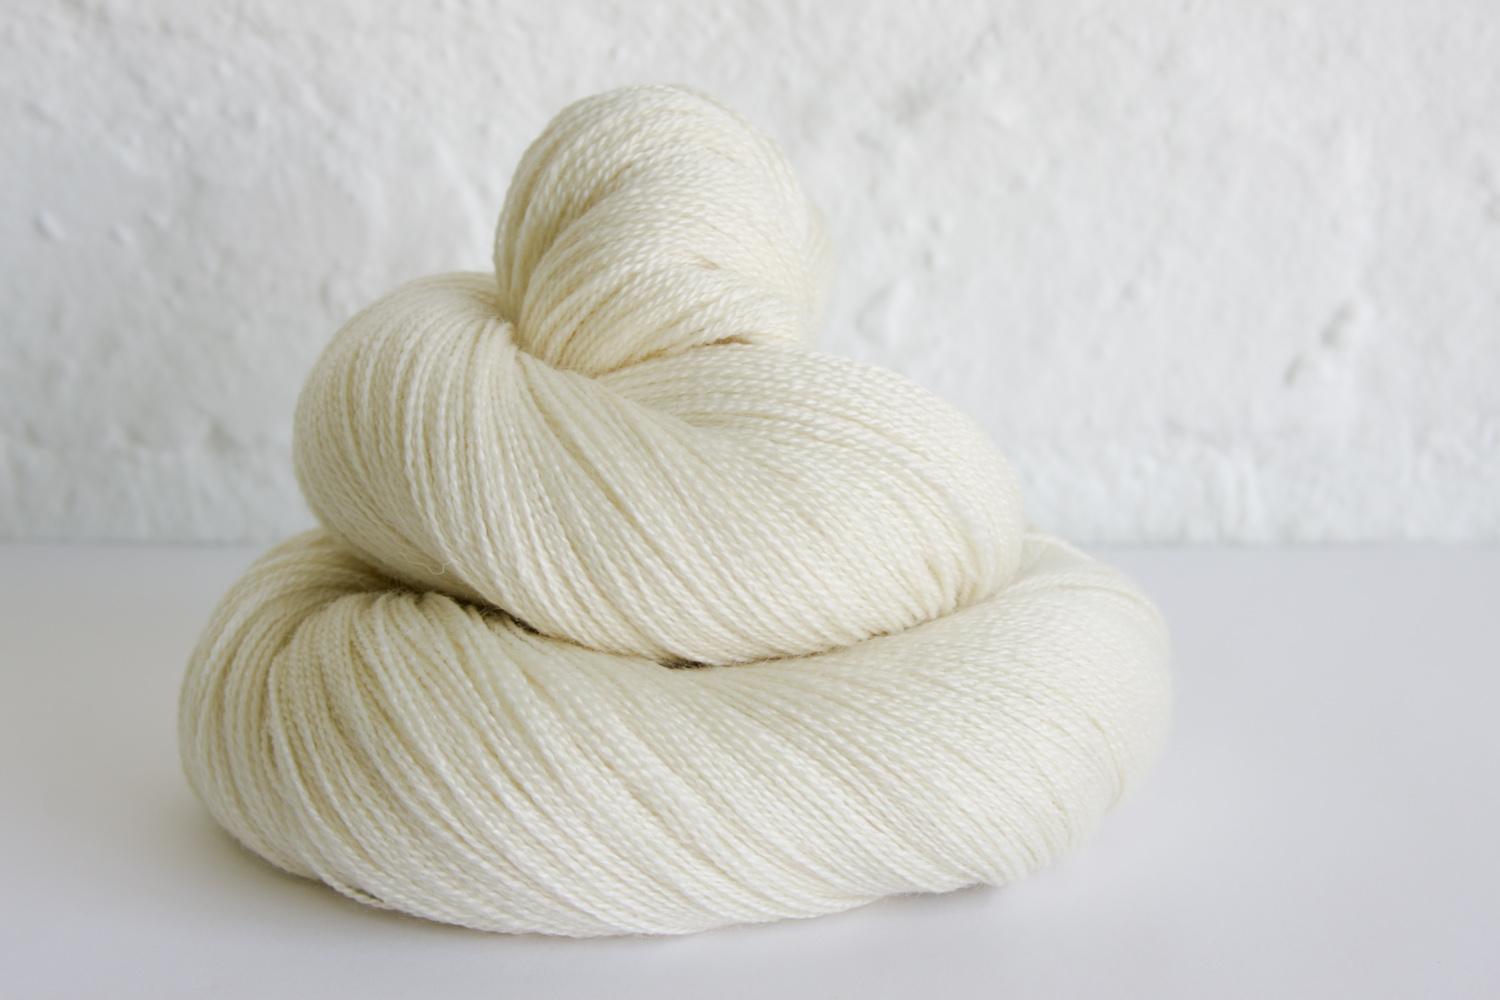 Colour - Natural white